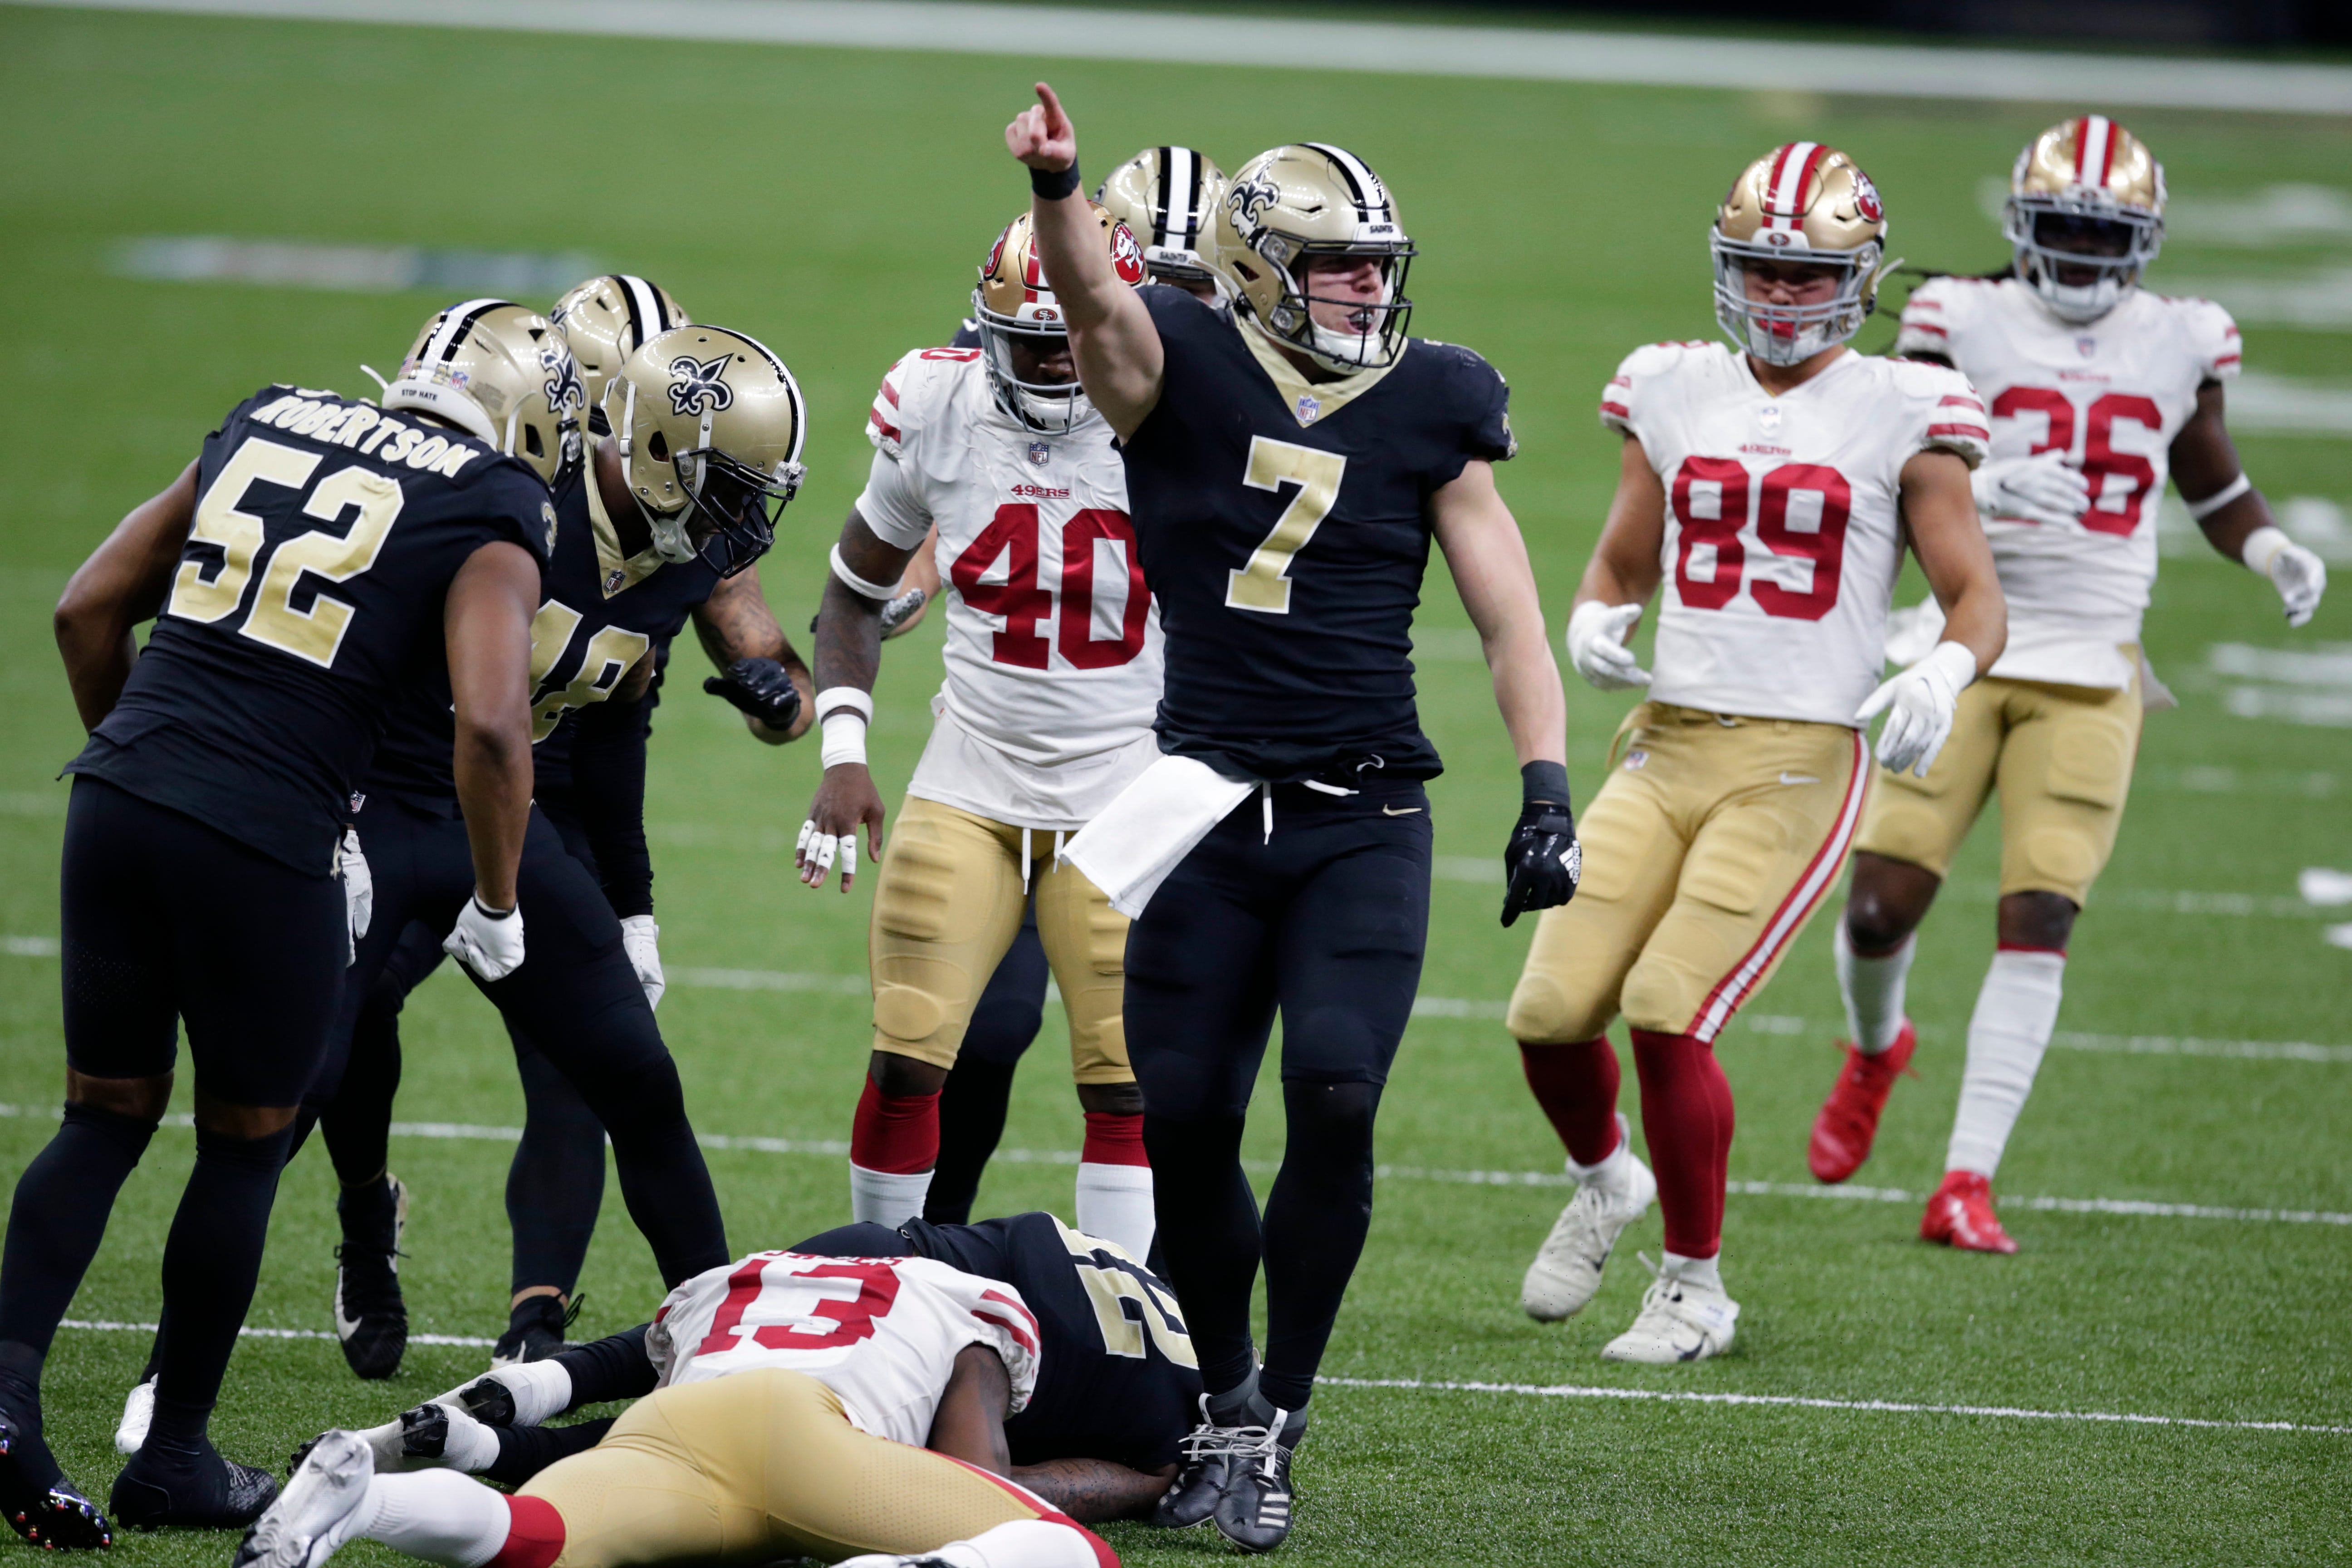 Saints expected to start Taysom Hill at quarterback over Jameis Winston, per reports